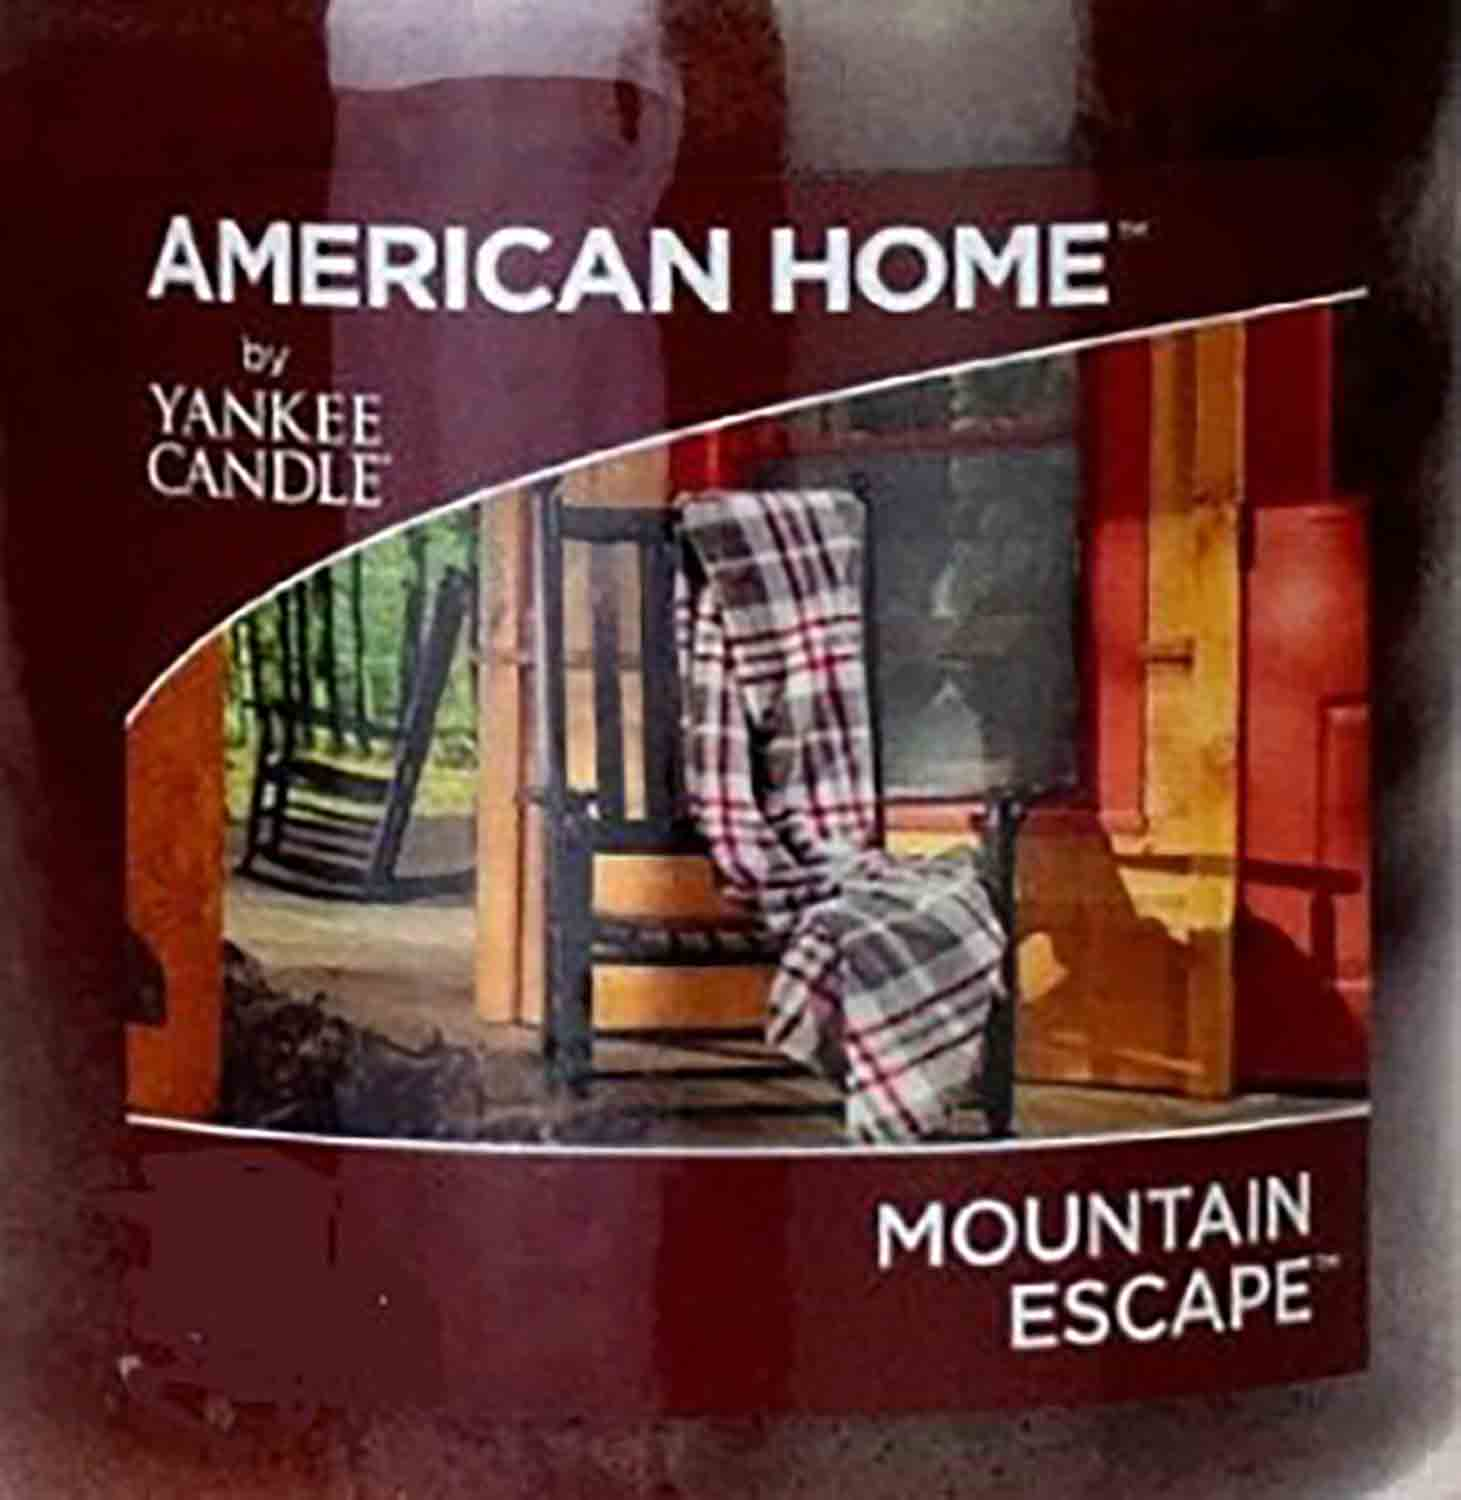 Crumble vosk Yankee Candle Mountain Escape 22g